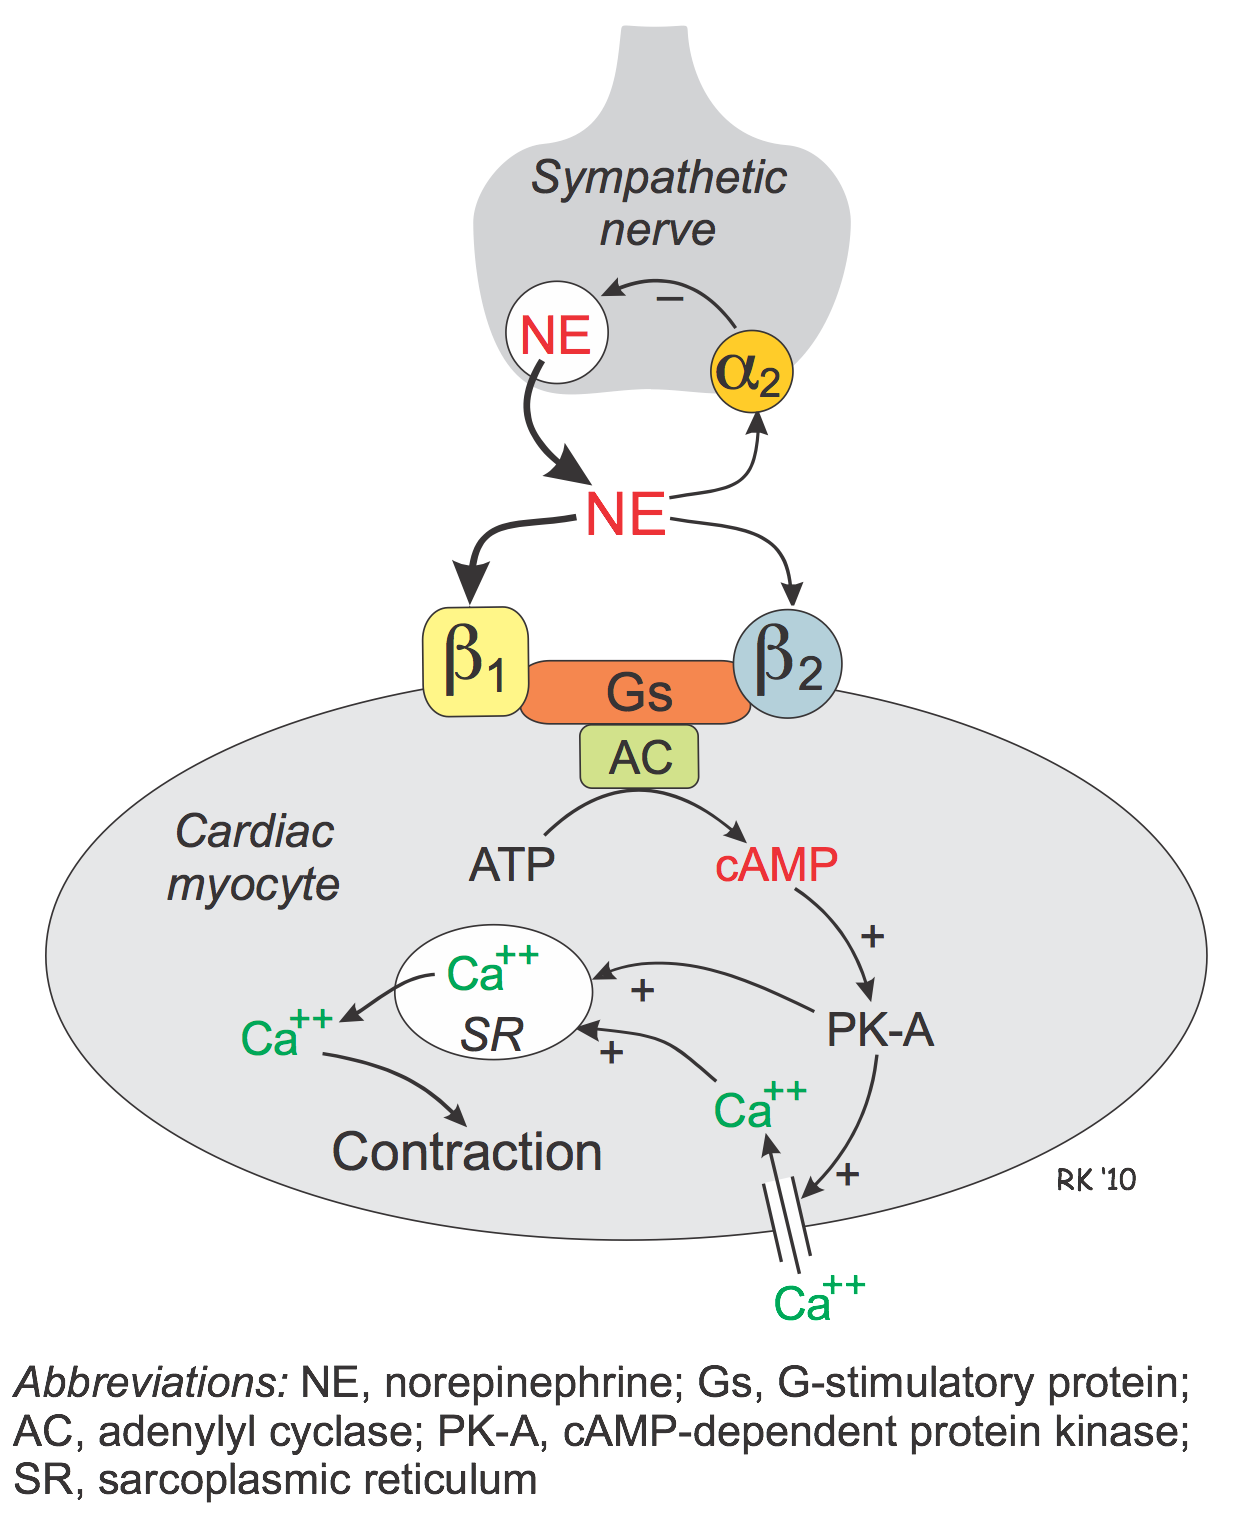 the effects of agonists Family of compounds subtype pharmacological action physiological effects examples of ligands gaba a receptor agonists: full agonists: full agonists bind to and activate the gaba a receptor complex at the gaba binding site located at the interface of α - and β-subunits (see figure 2), enhancing inhibitory synaptic transmission by causing.